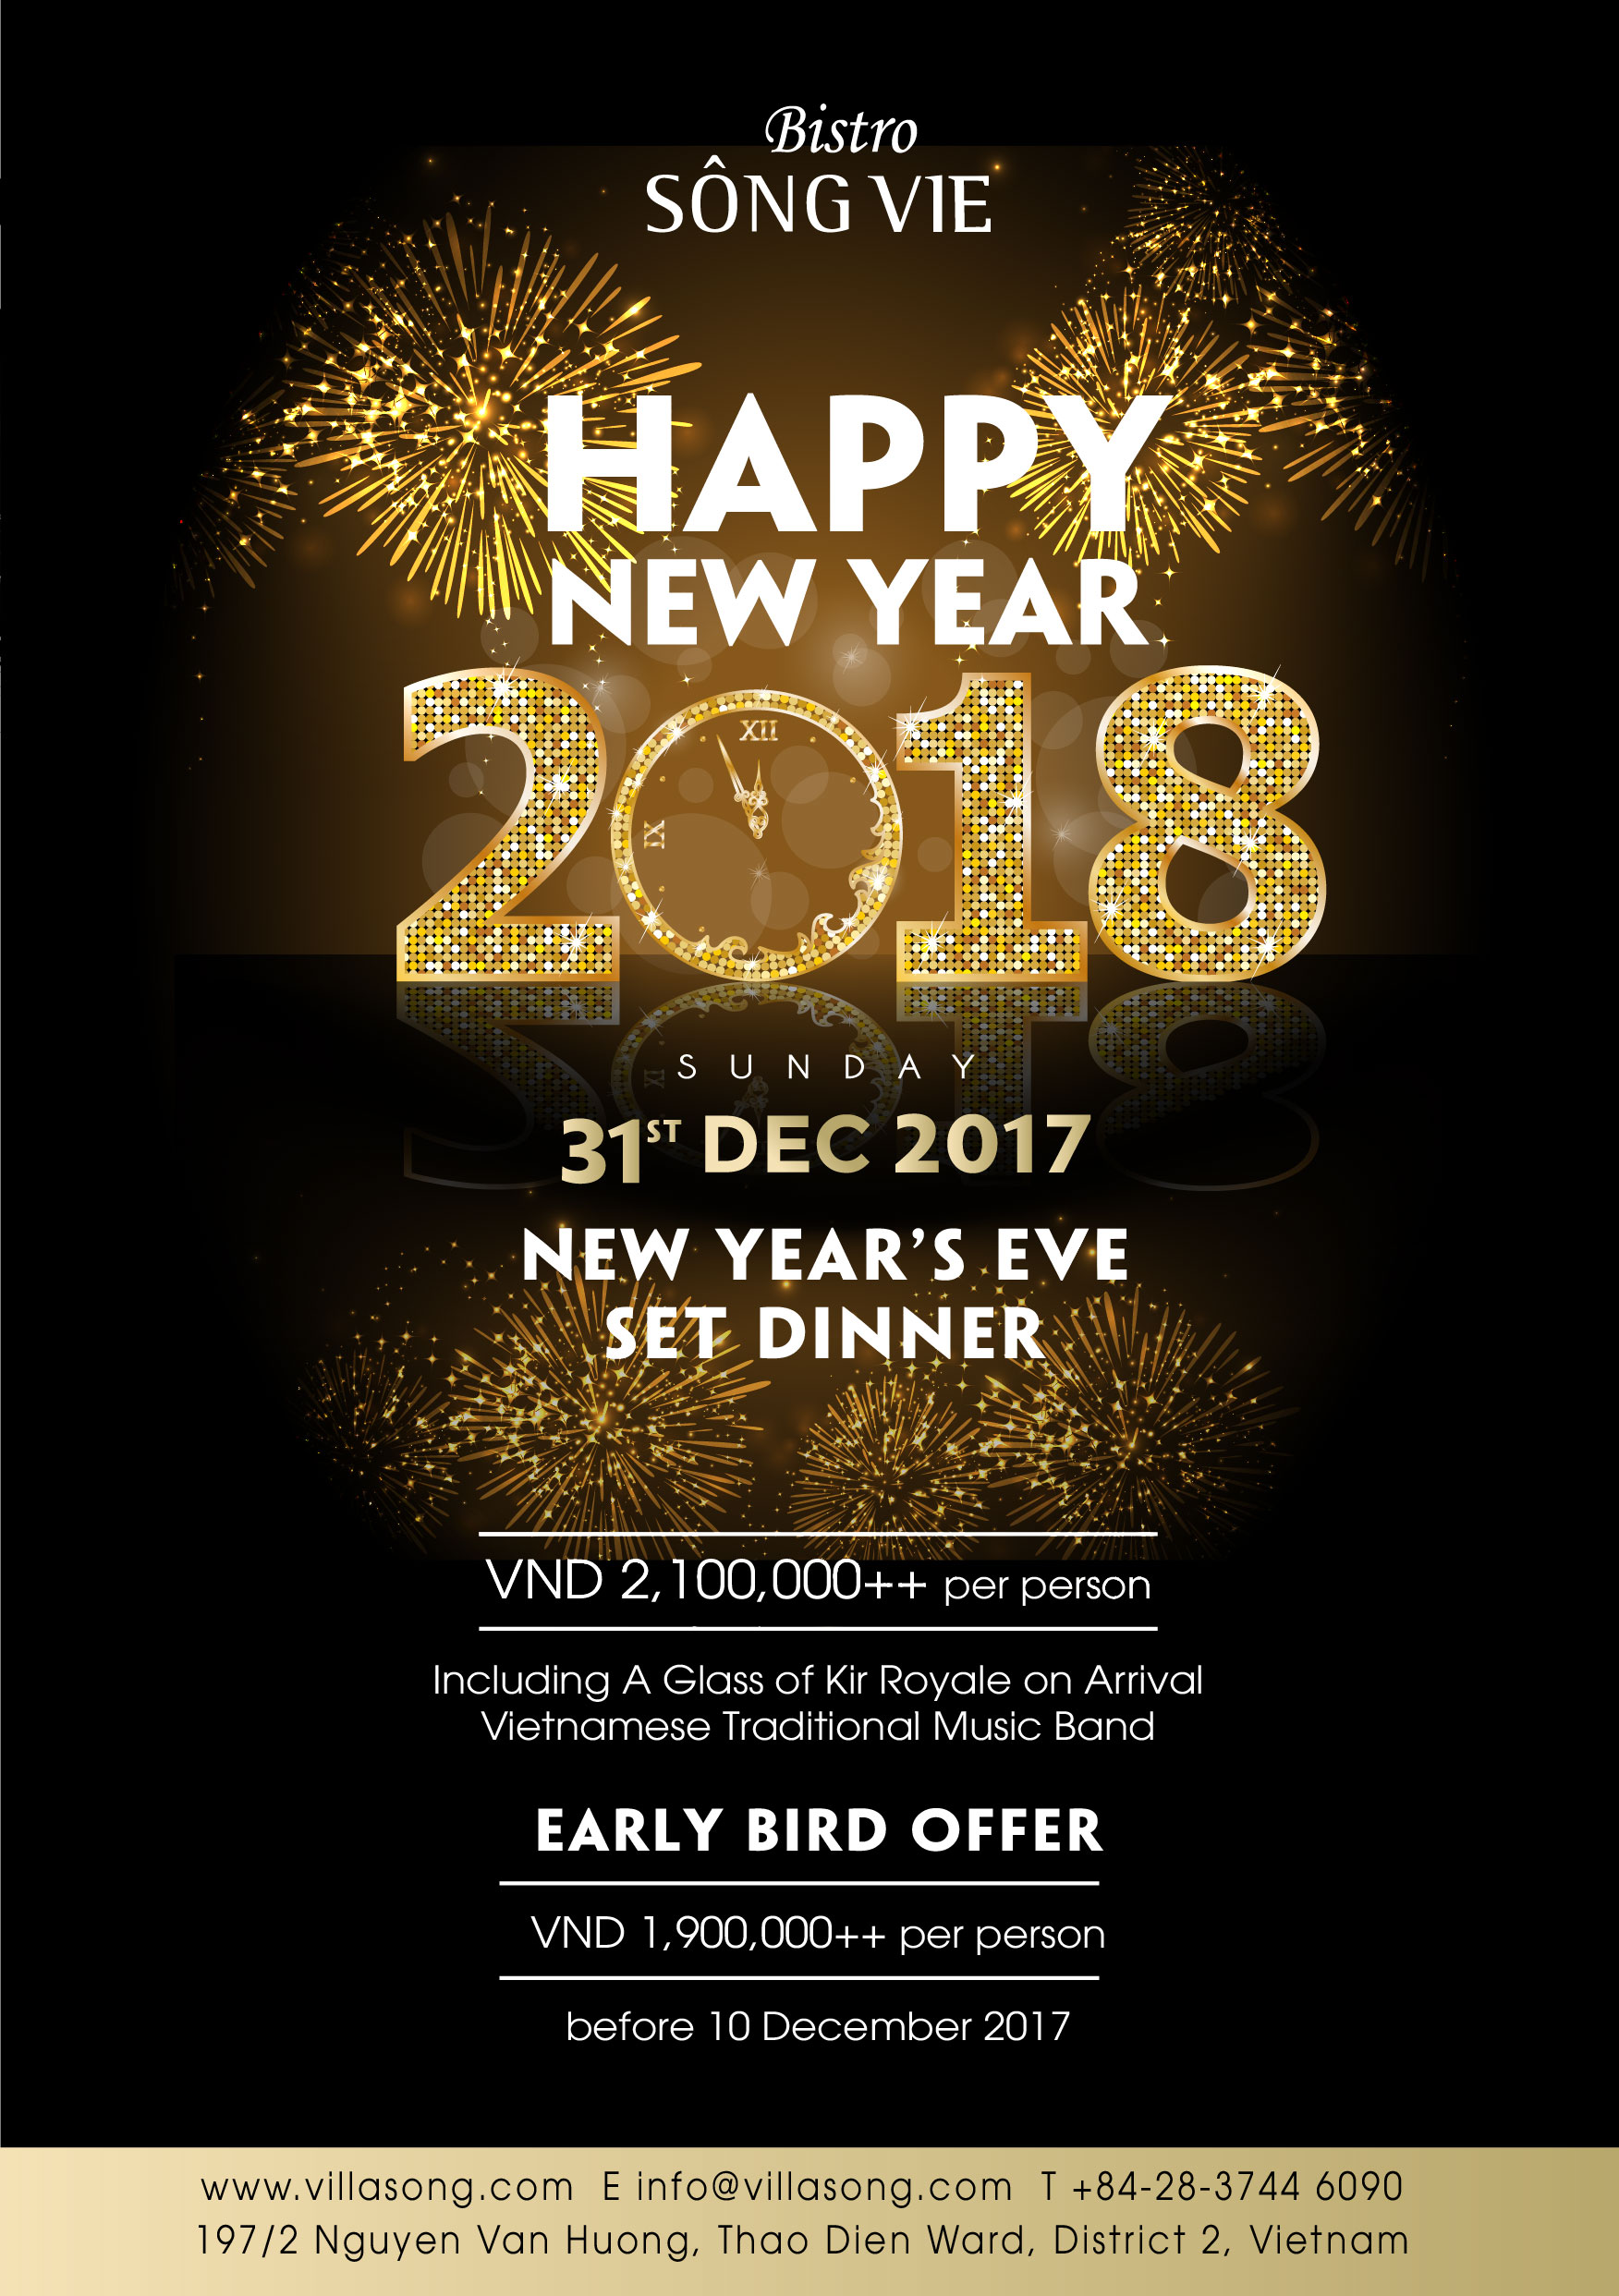 New Year Eve 2017 offer